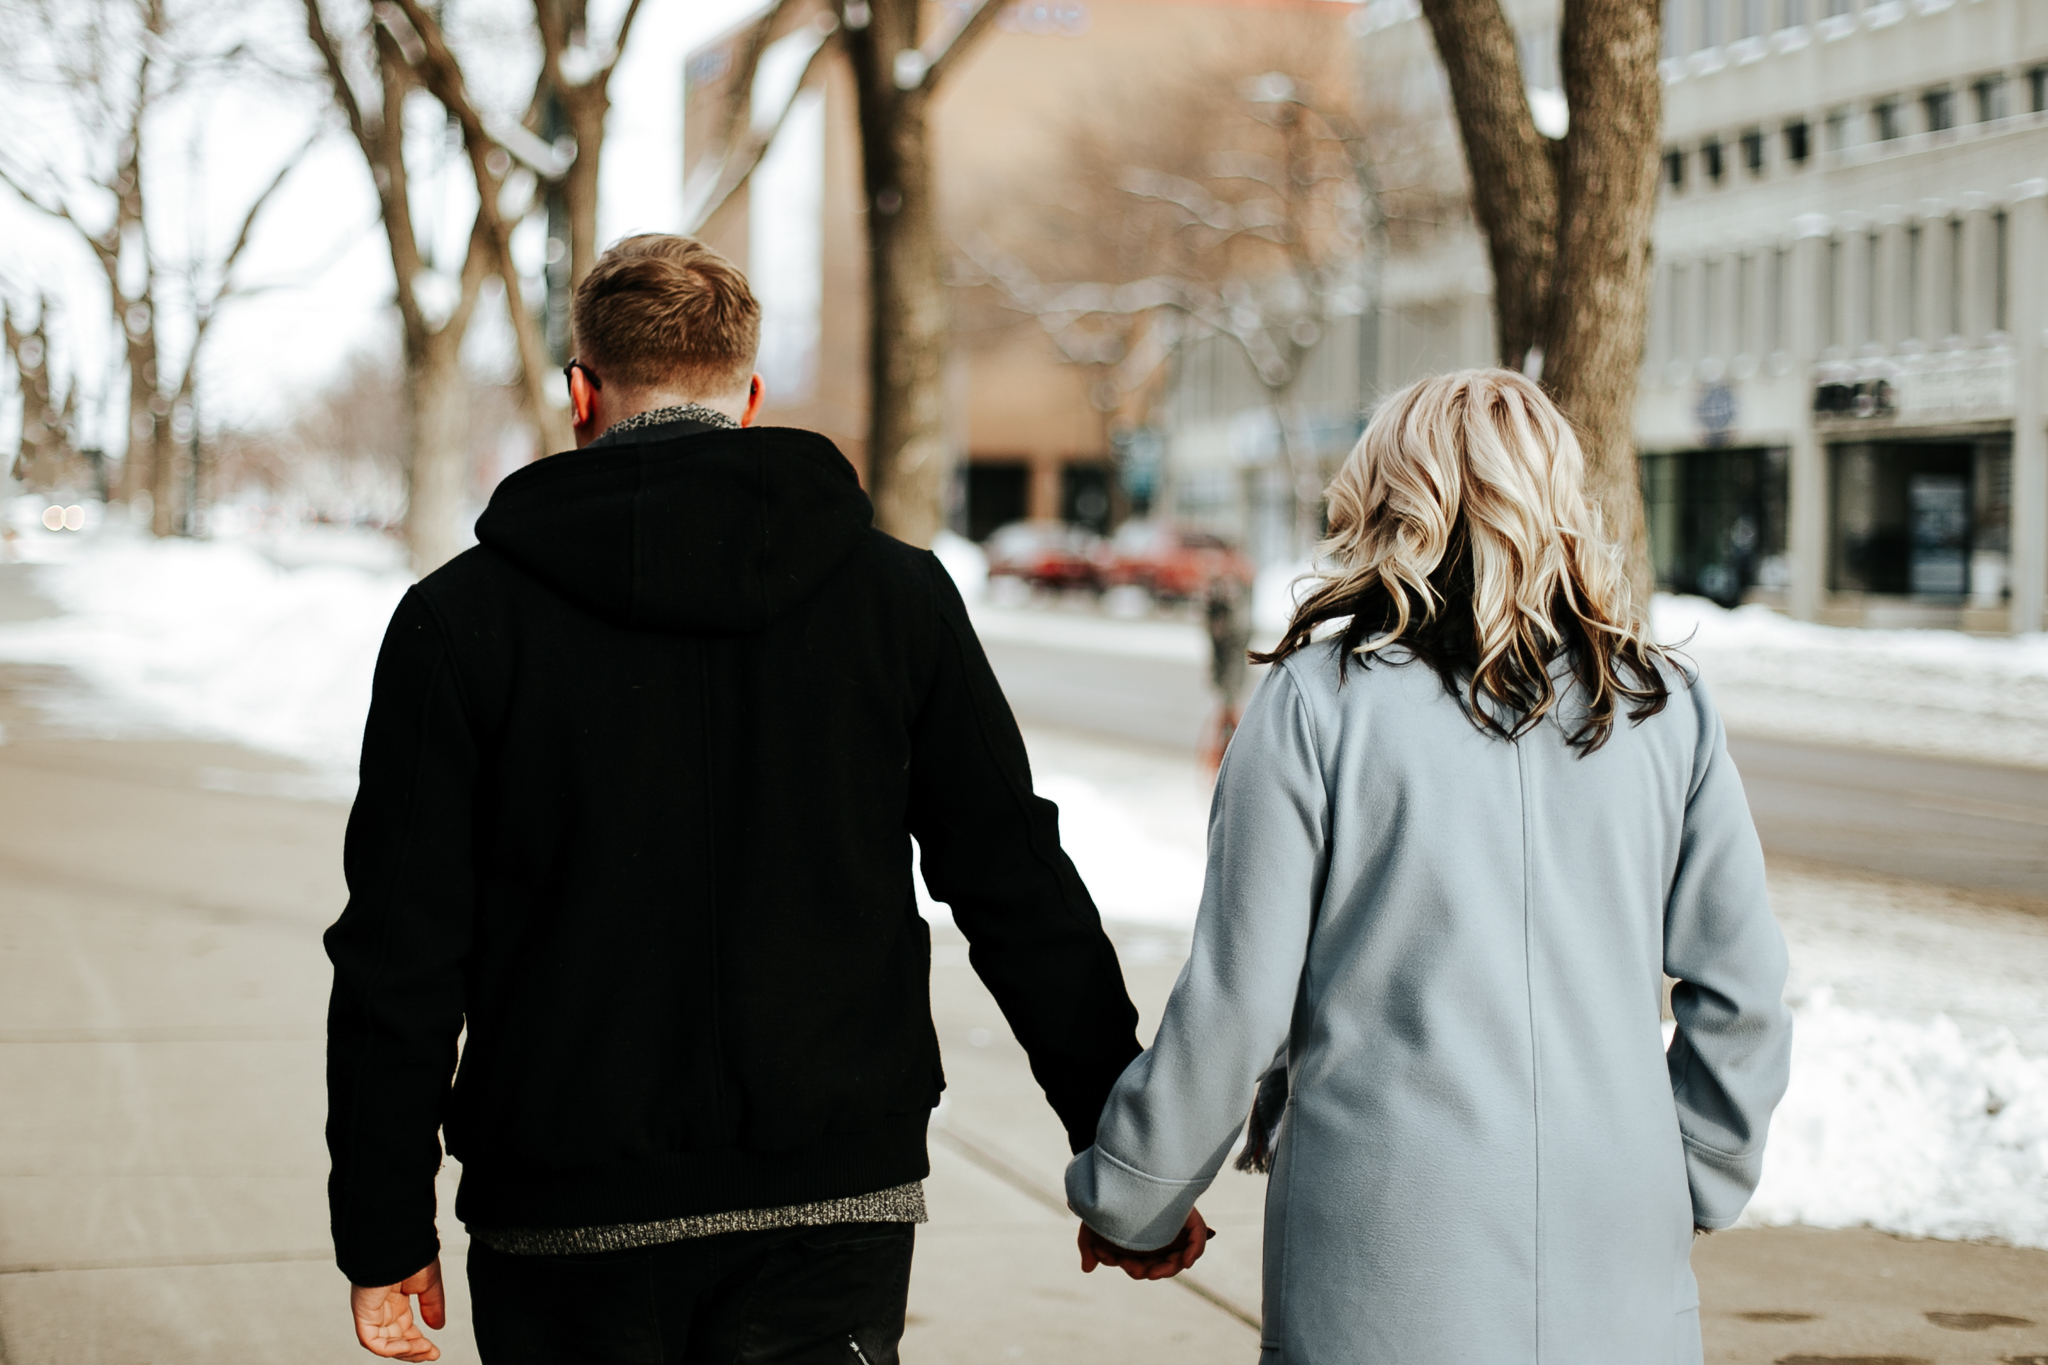 lethbridge-photographer-love-and-be-loved-photography-brandon-danielle-winter-engagement-downtown-yql-picture-image-photo-26.jpg